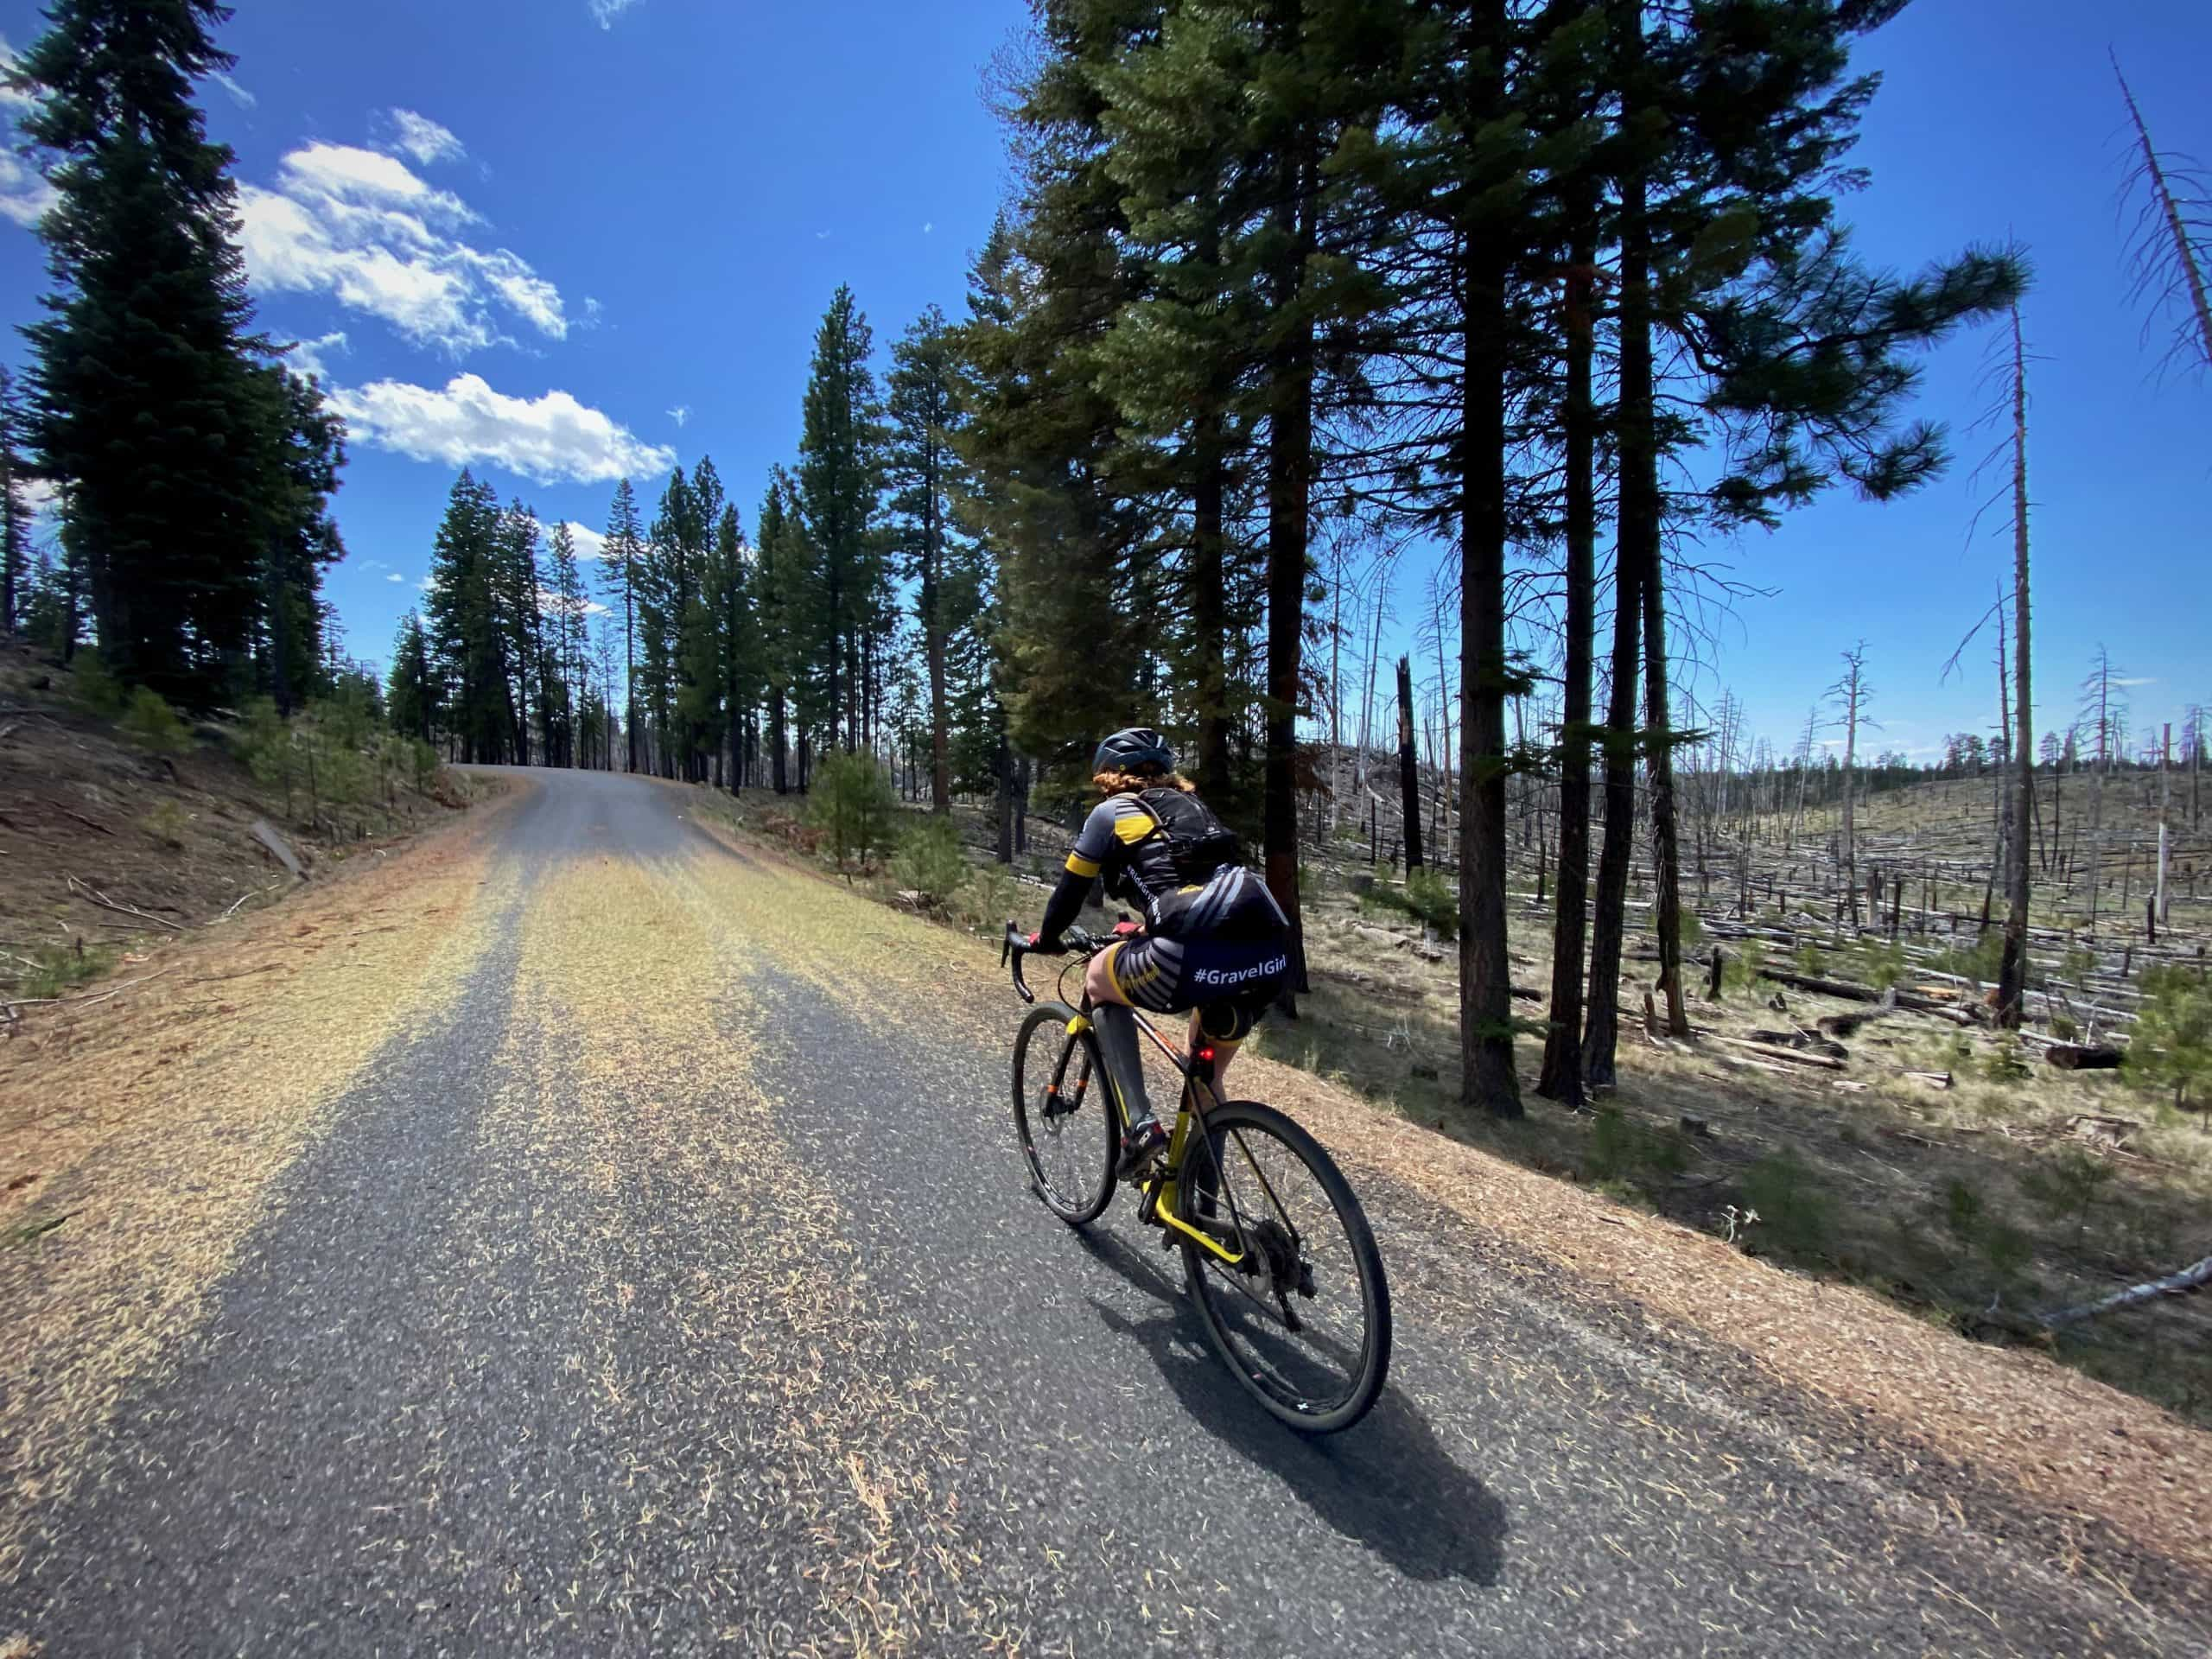 Cyclist on paved NF 41 road near Delintment Lake near Burns, OR.